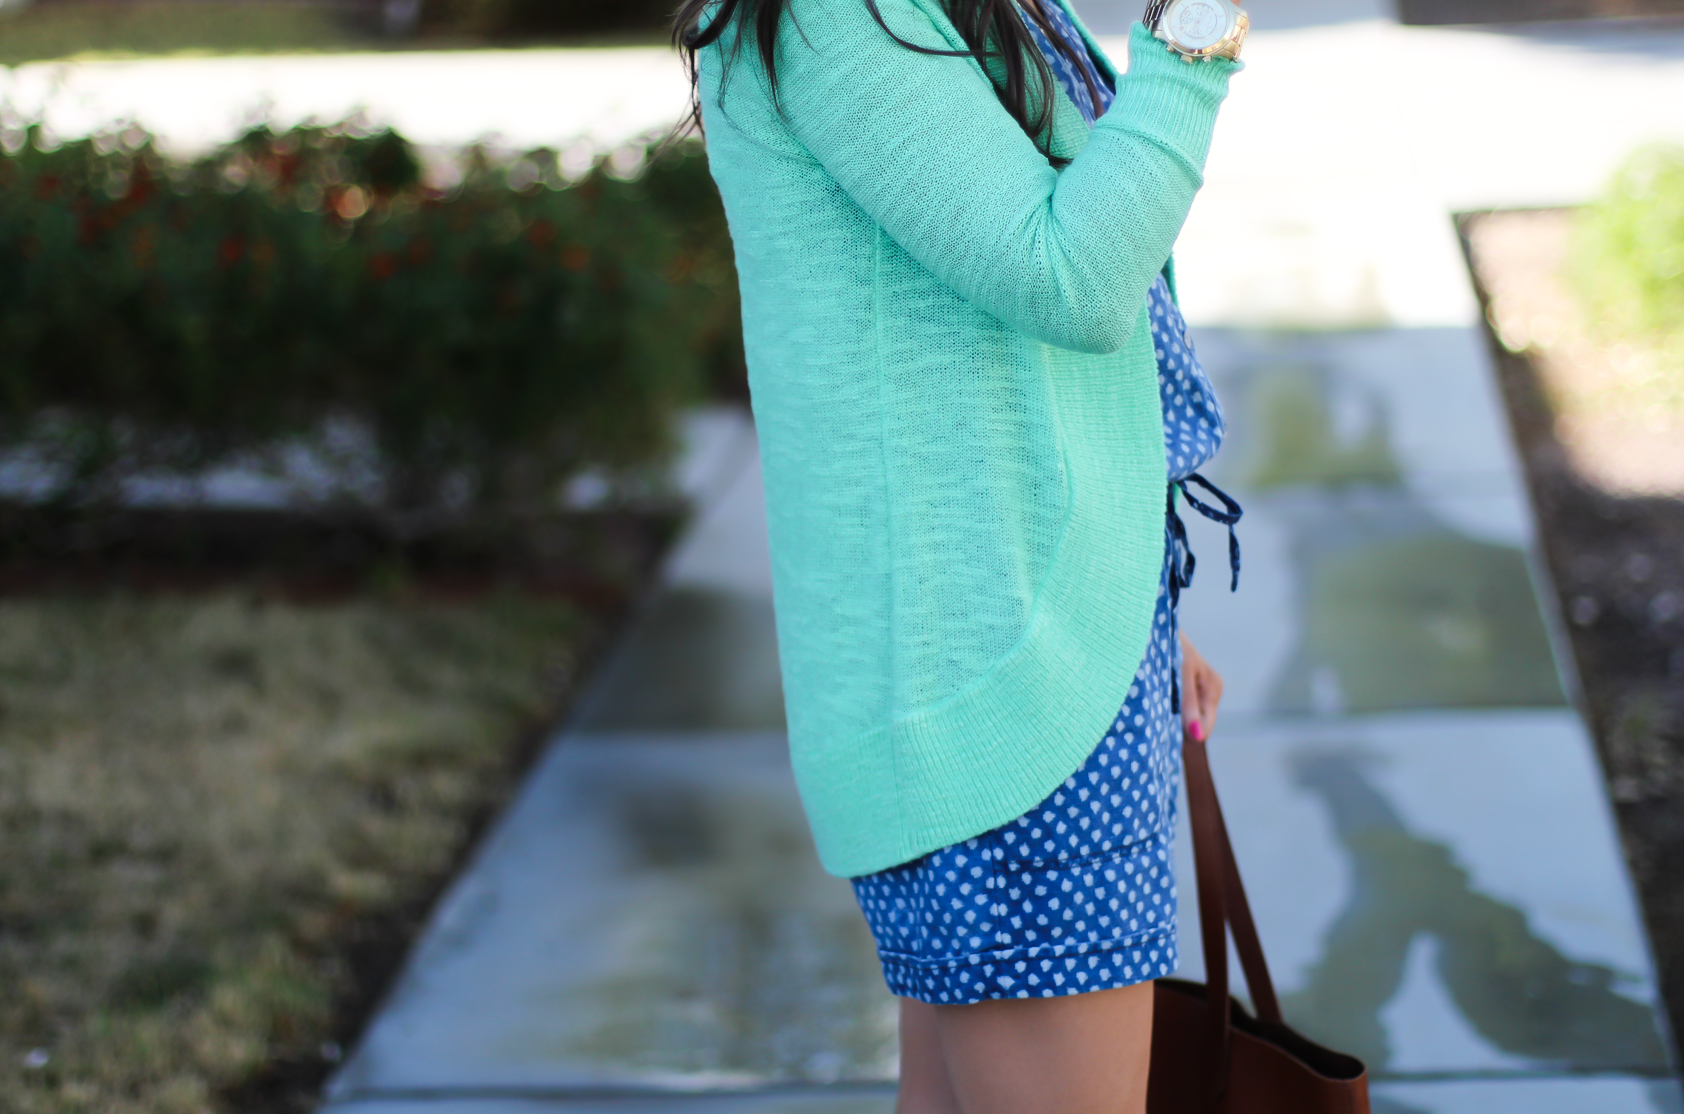 Polka Dot Chambray Romper, Green Summer Cardigan, Cognac Wedges, Cognac Tote, Anthropologie, Lilly Pulitzer, Madewell 4